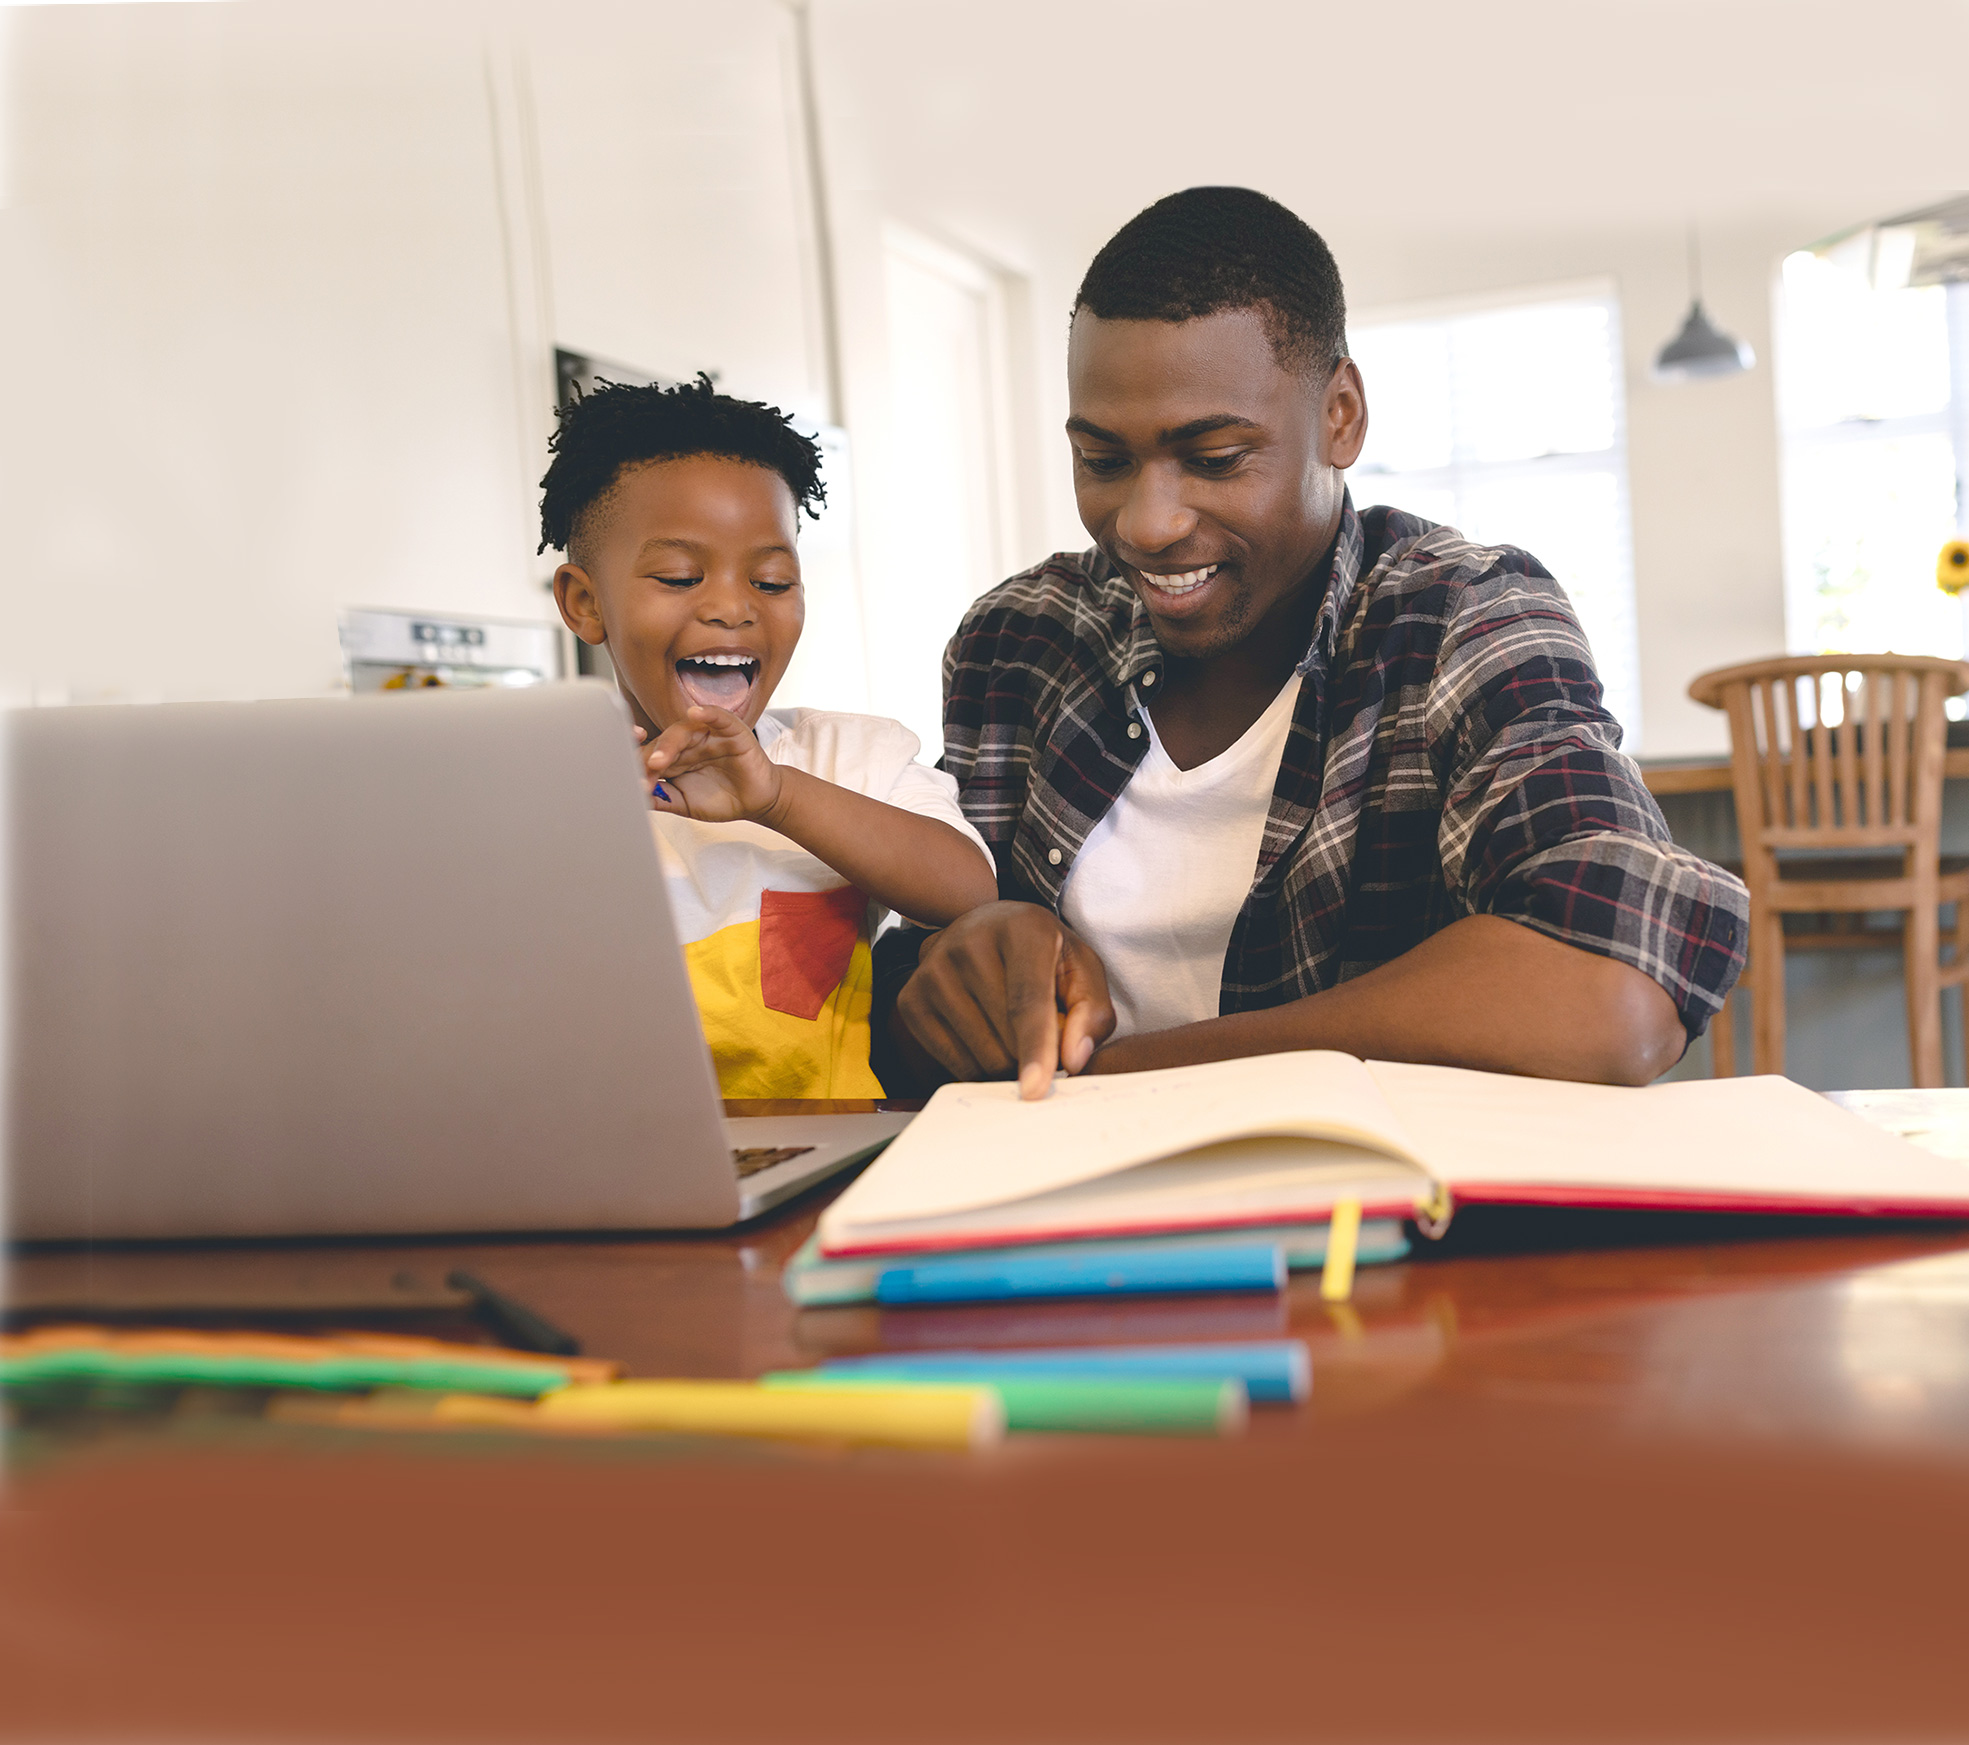 Man of colour and his son on computer at kitchen table smiling